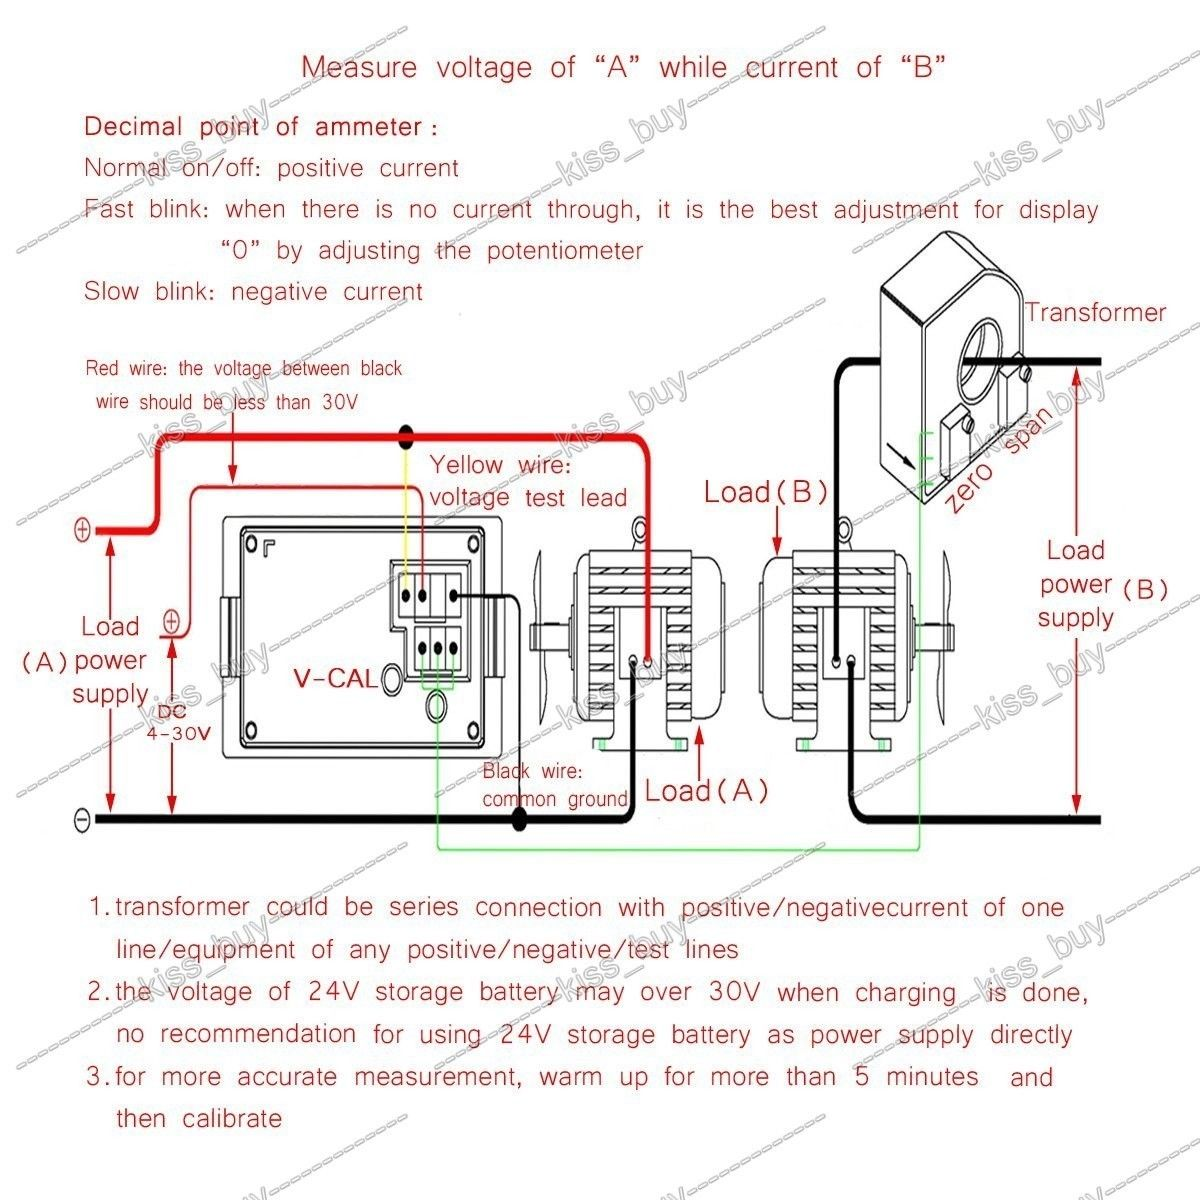 12v voltmeter wire diagram wiring library 12v meter diagram [ 1200 x 1200 Pixel ]